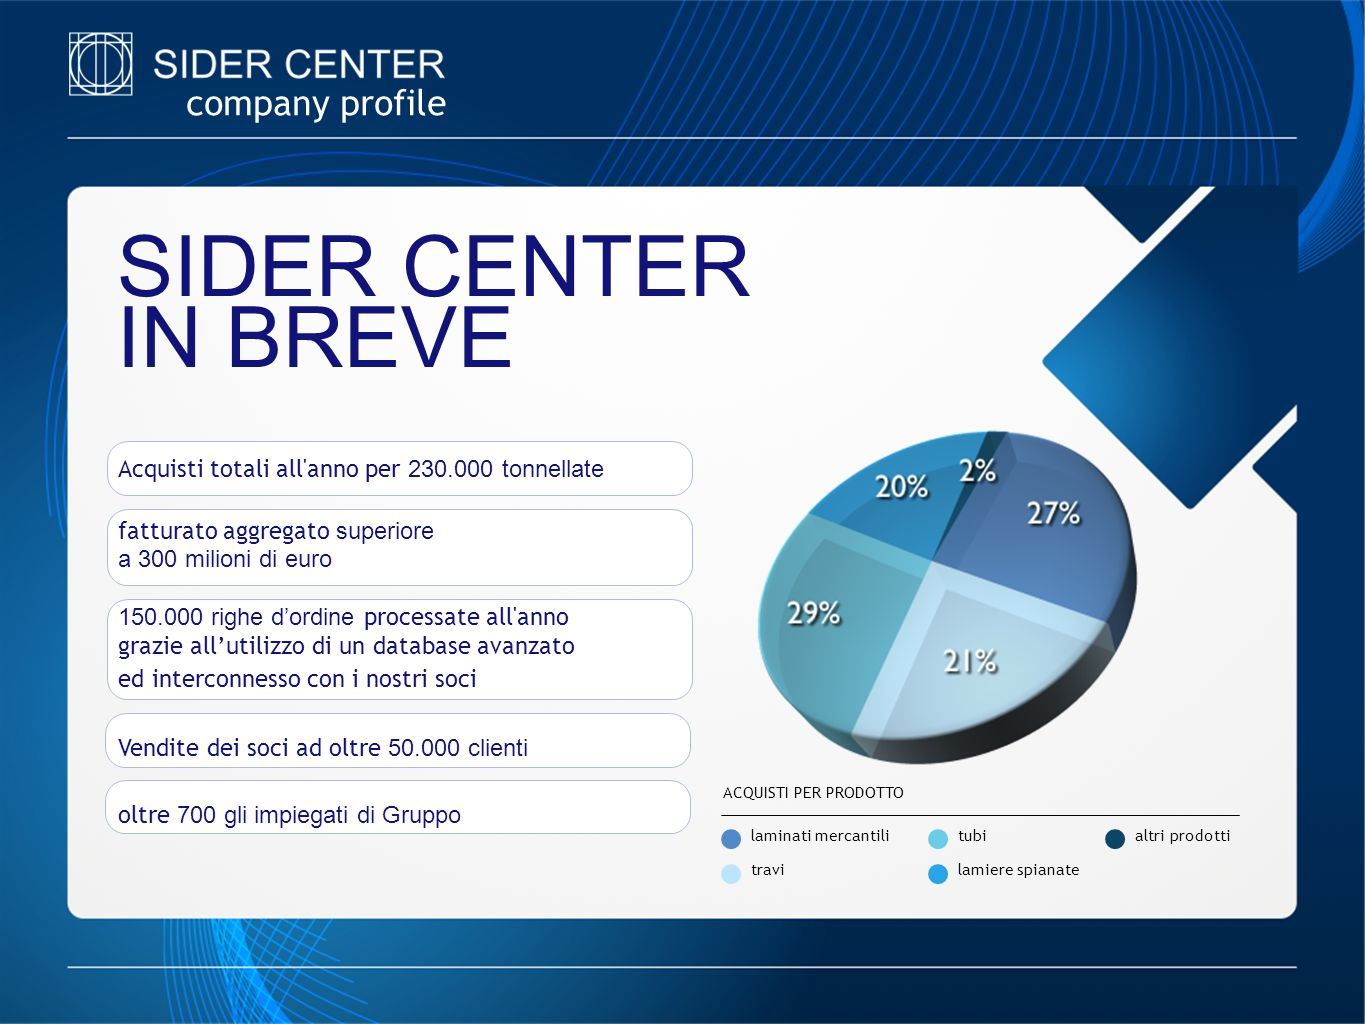 SIDER CENTER IN BREVE company profile